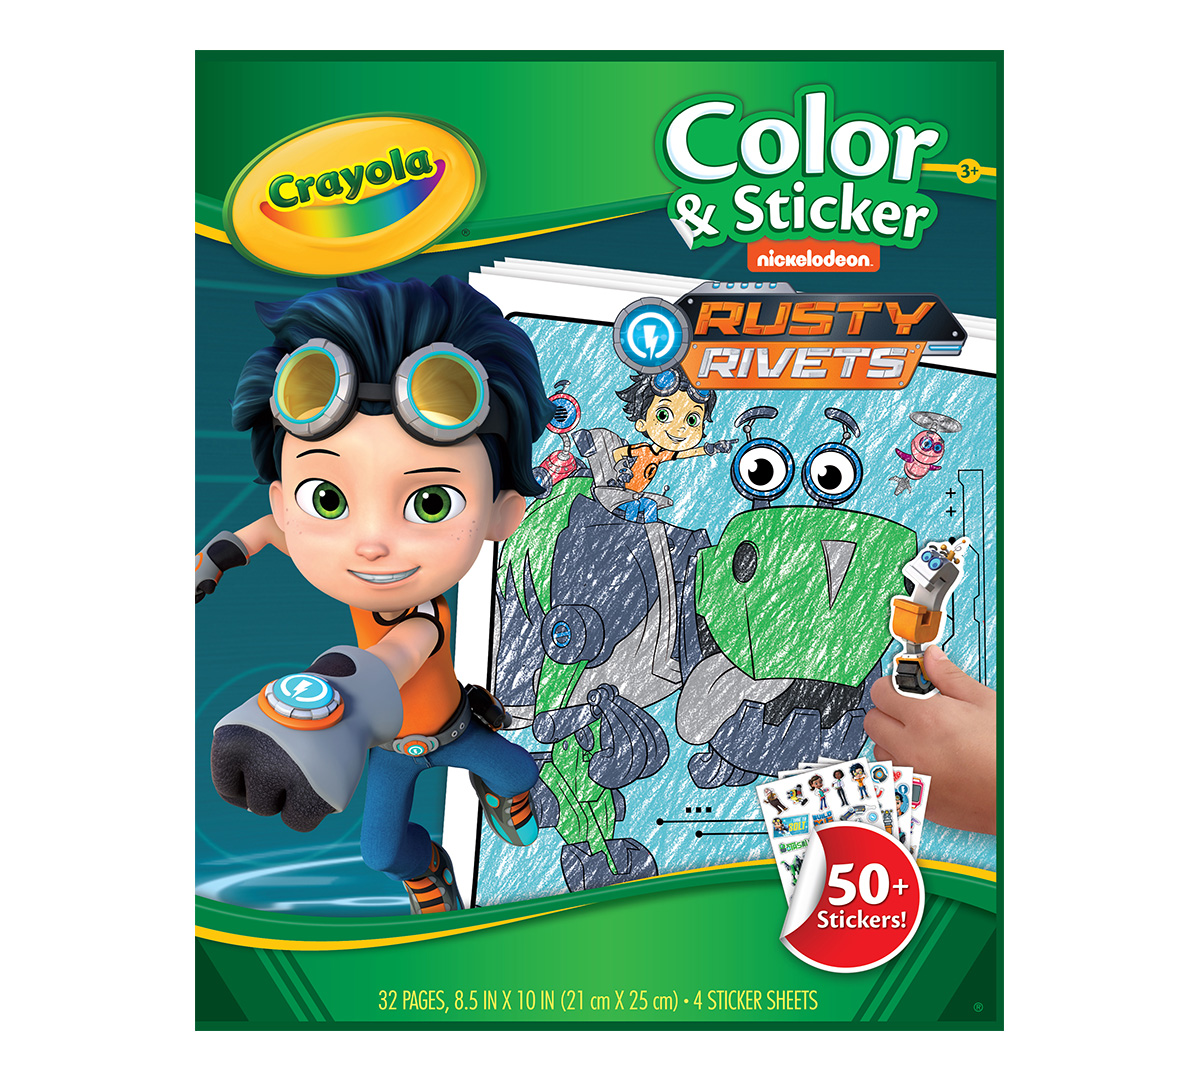 Rusty Rivets Coloring Pages: Crayola Rusty Rivets Color & Sticker Book, 32 Nickelodeon